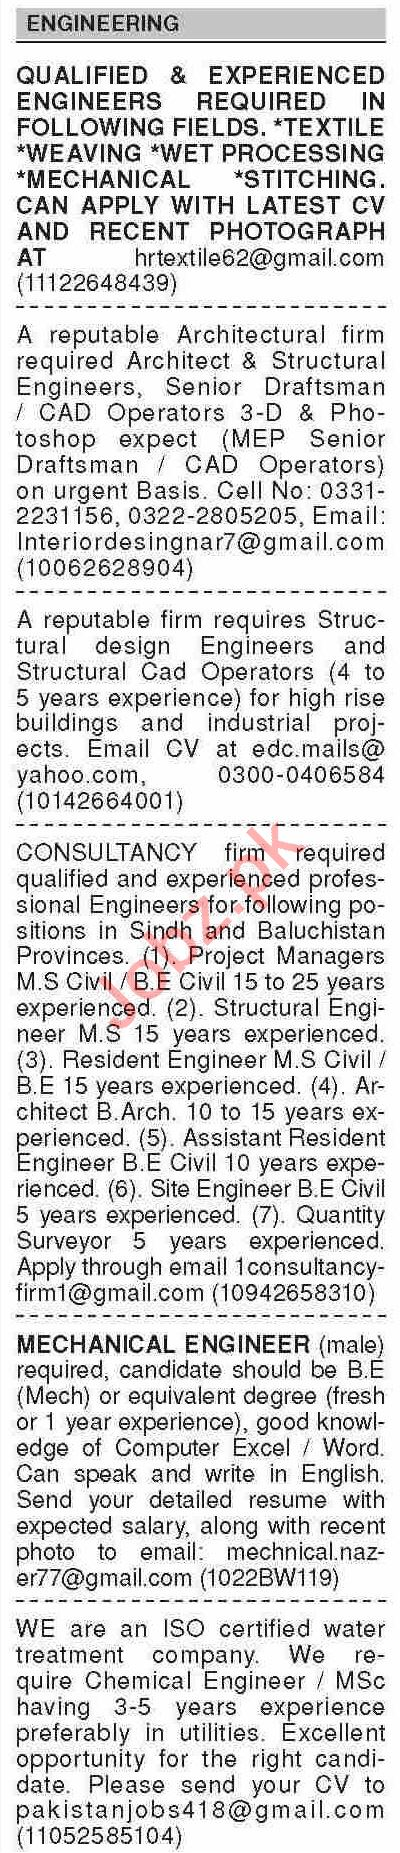 Dawn Sunday Classified Ads 14 March 2021 for Engineering